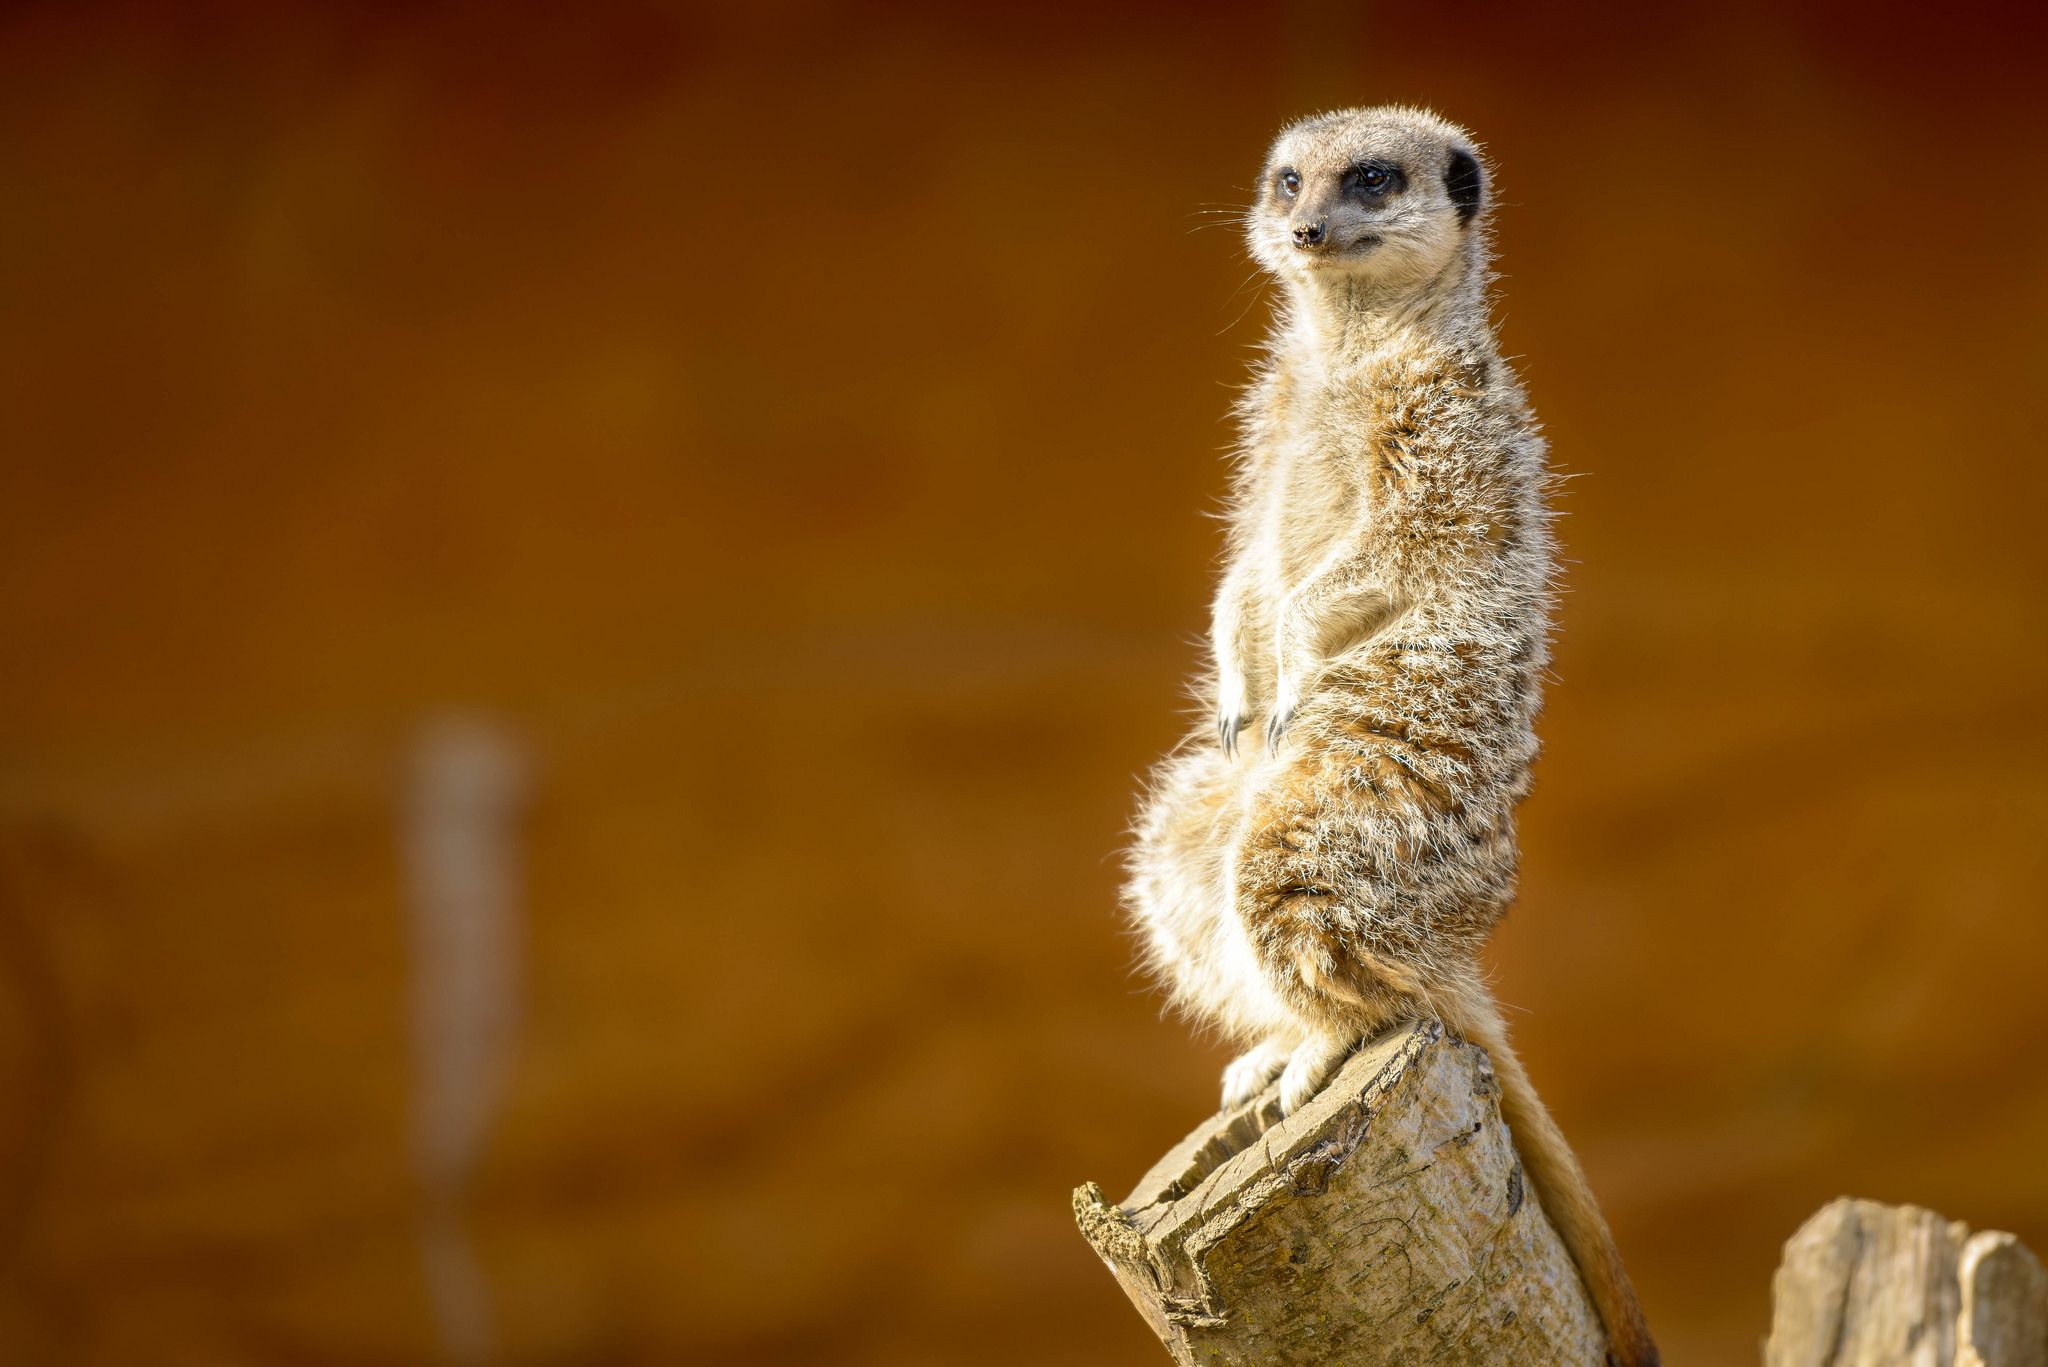 One of the most important #meerkat roles is that of the sentry, or watch guard. One meerkat will stand on its hind legs, scanning the area for predators while the rest of the mob forages. The lookout lets out a distinctive bark to notify the gang to sprint to the nearest tunnel entrance. The sentry is also the first to emerge from the burrow to check if the coast is clear. Crafted Holiday featuring the Kalahari Desert >>  📷: Marcus Saul on Flickr